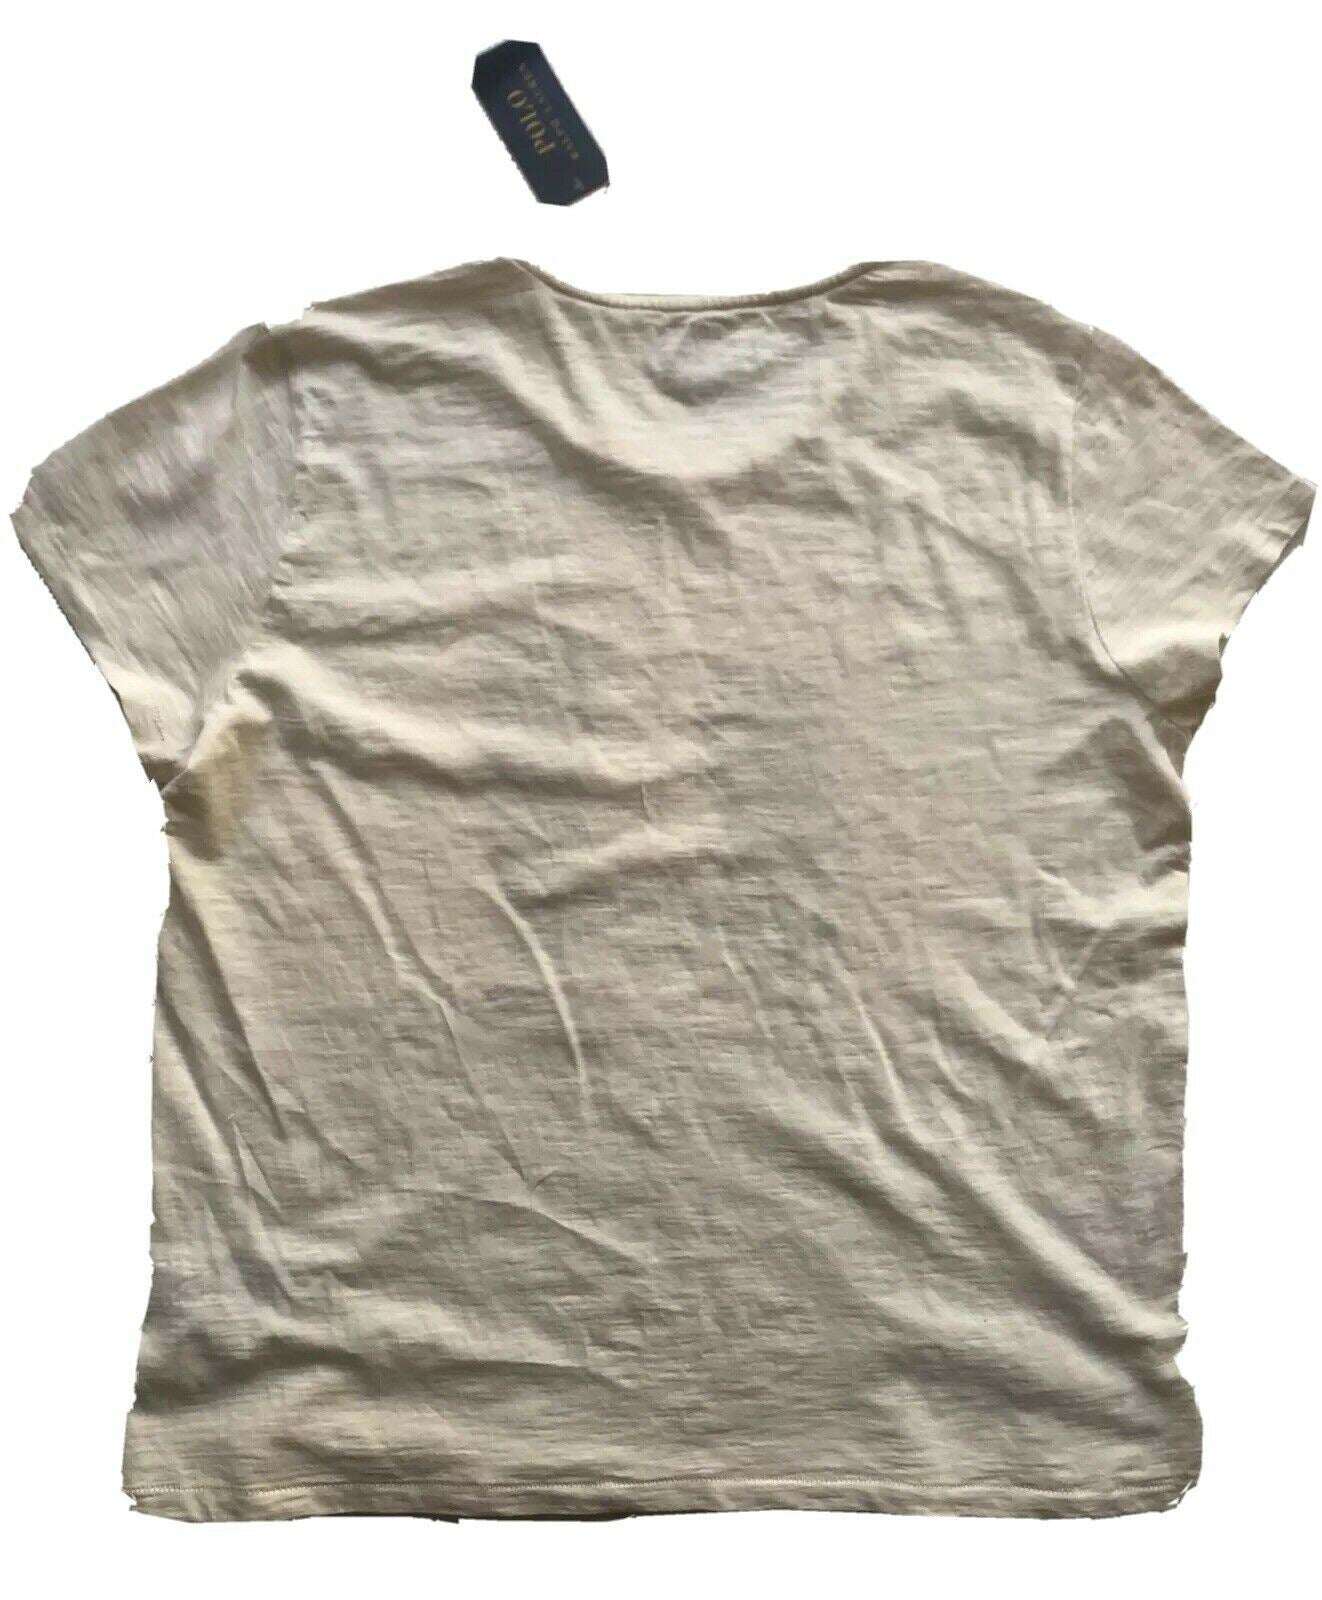 NWT Polo Ralph Lauren Women's Short Sleeve White T-Shirt Size Large